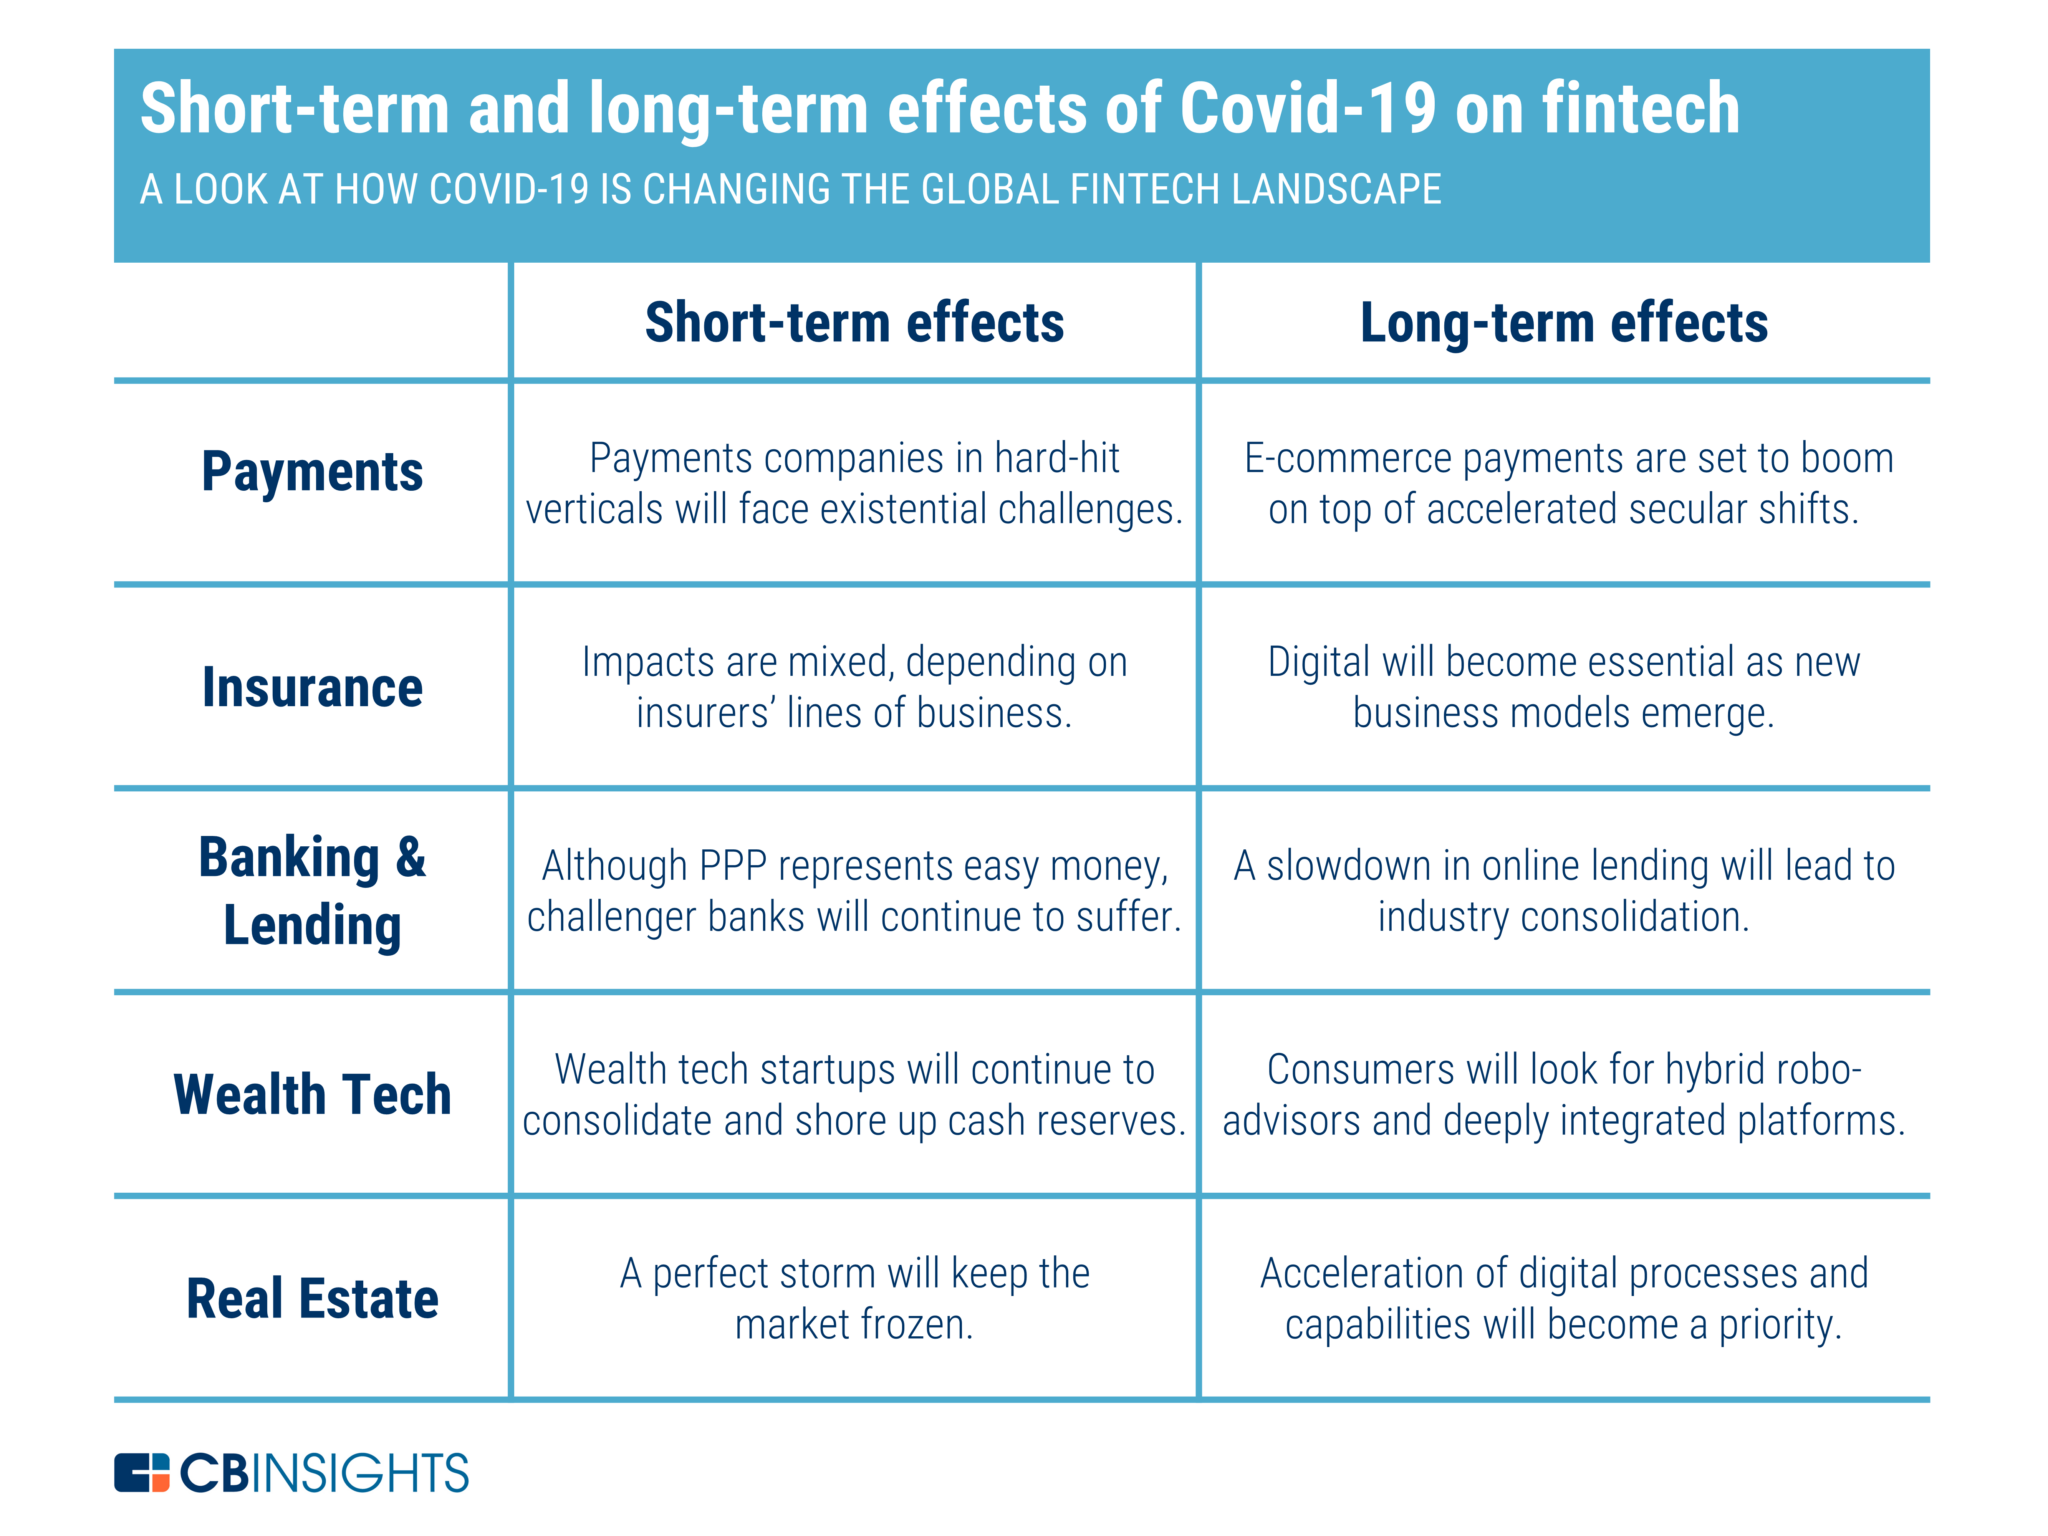 Short-term-and-long-term-effects-of-COVID-19-on-Fintech-Source-CB-Insights-2048x1536